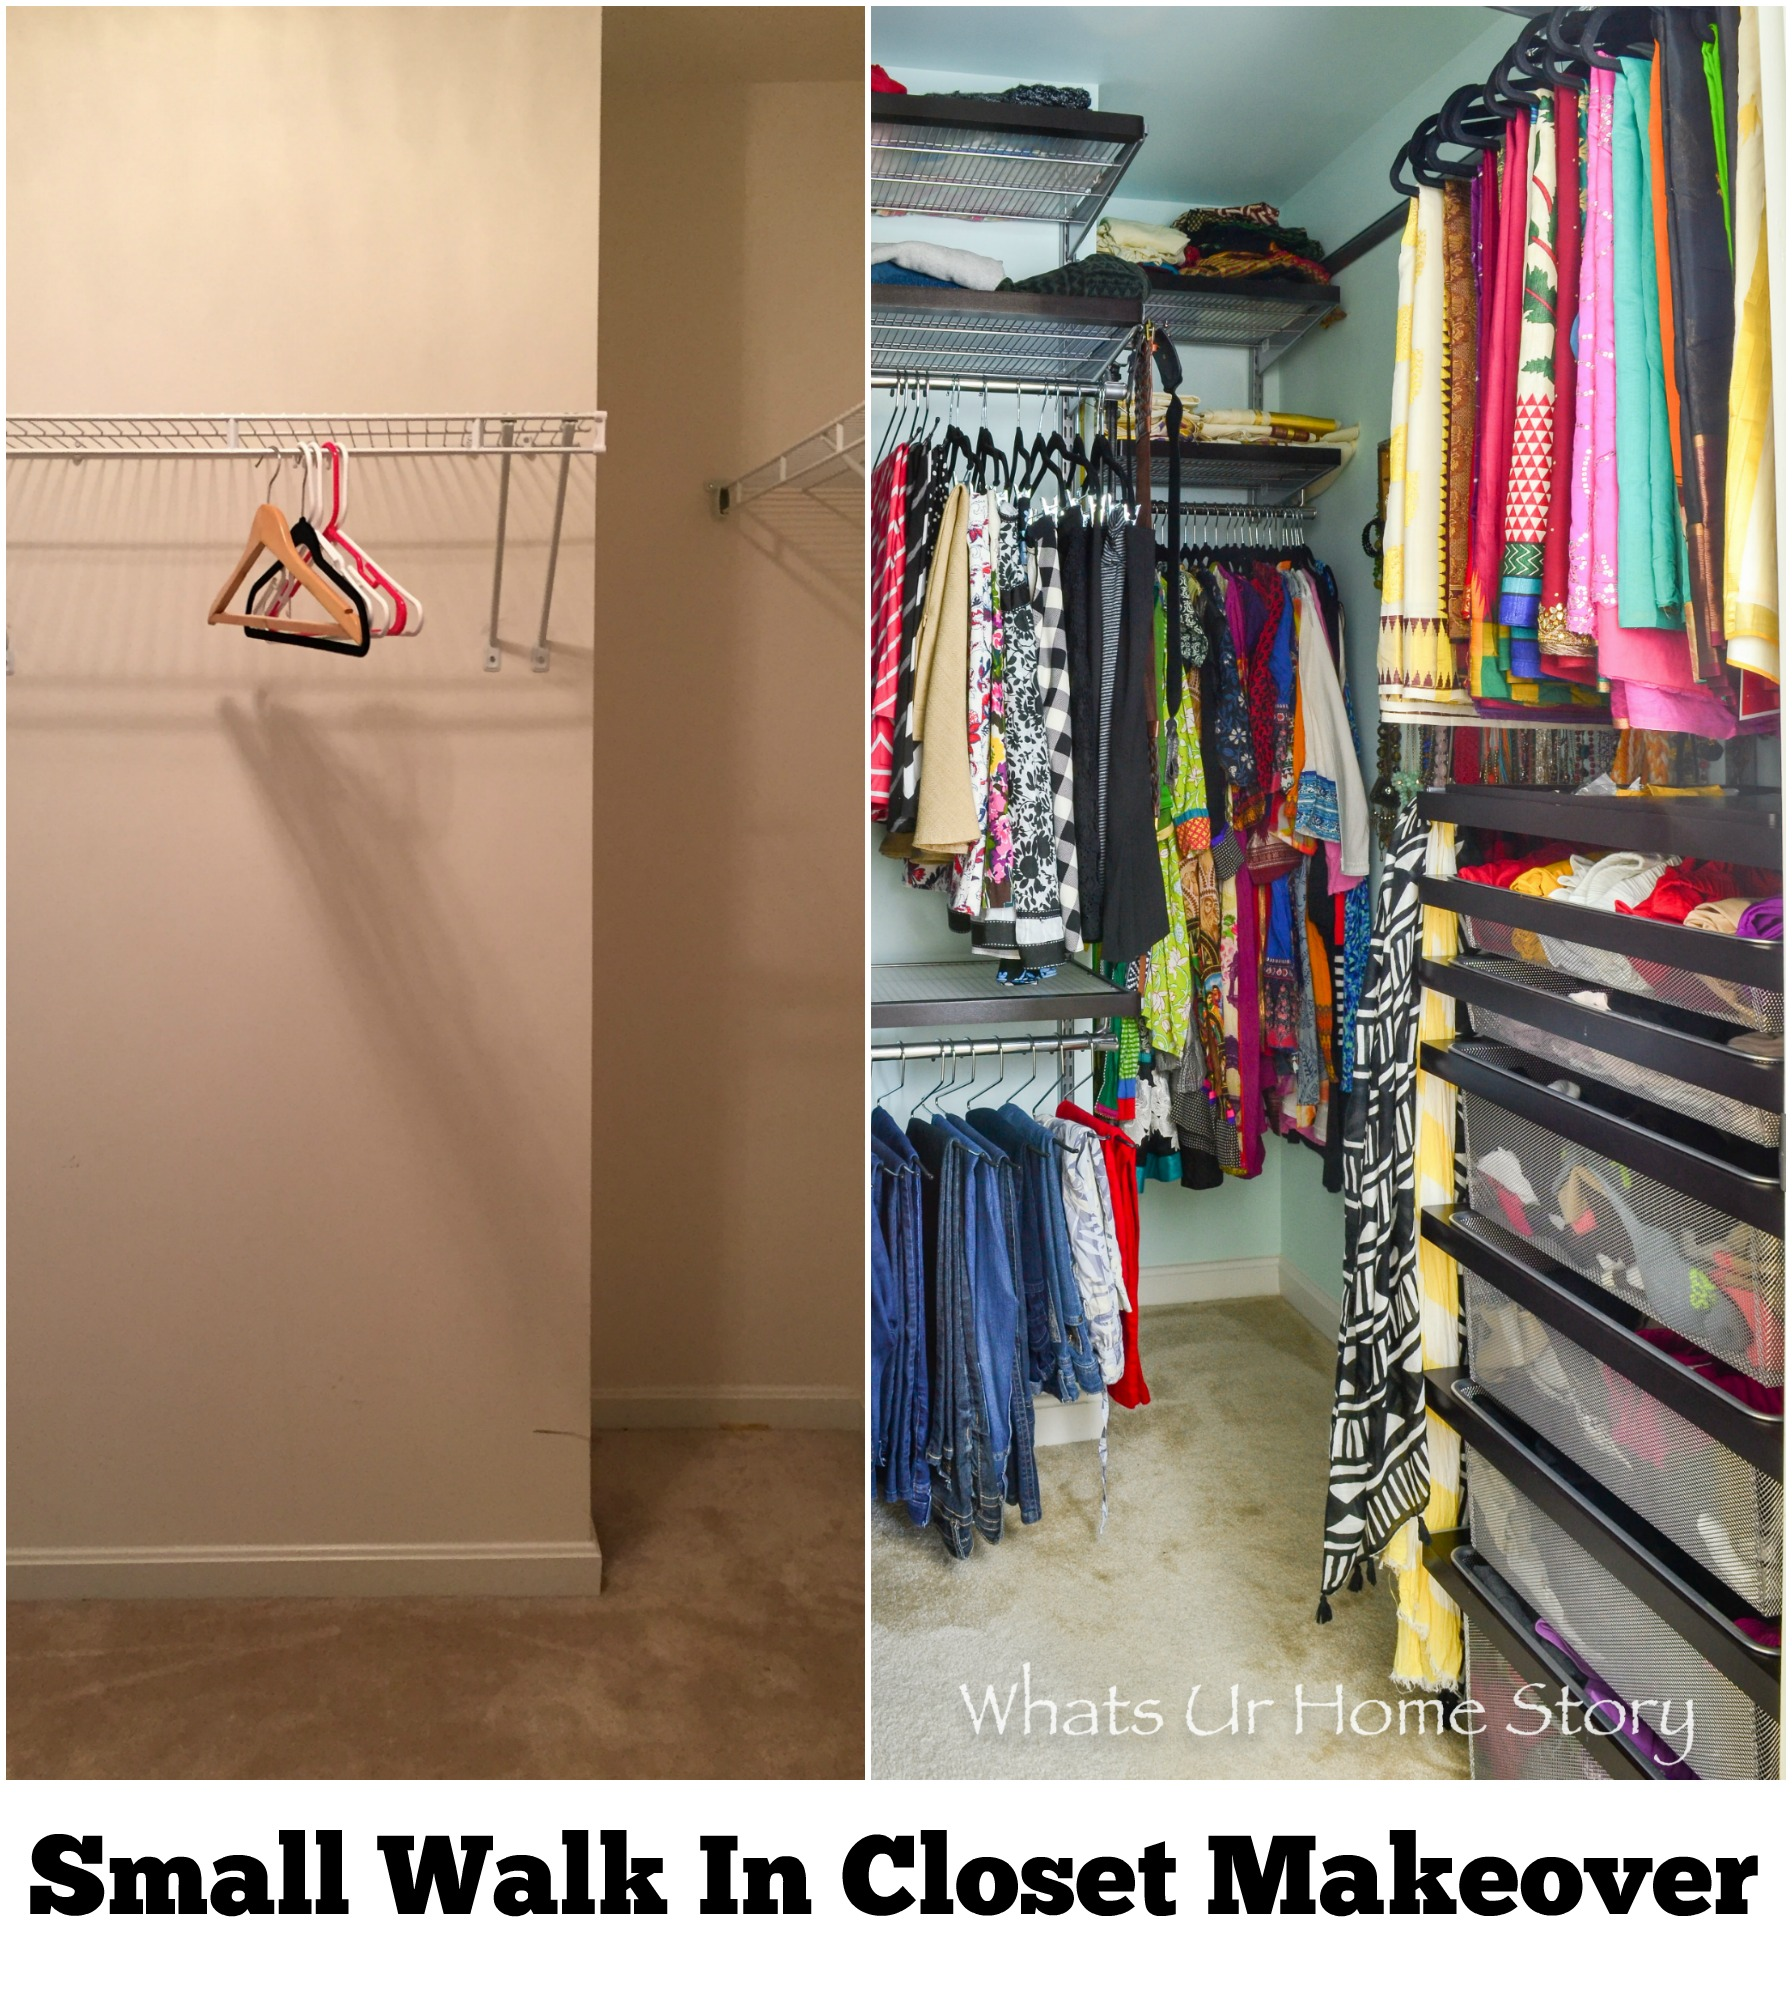 Small Walk In Closet small walk in closet makeover | whats ur home story